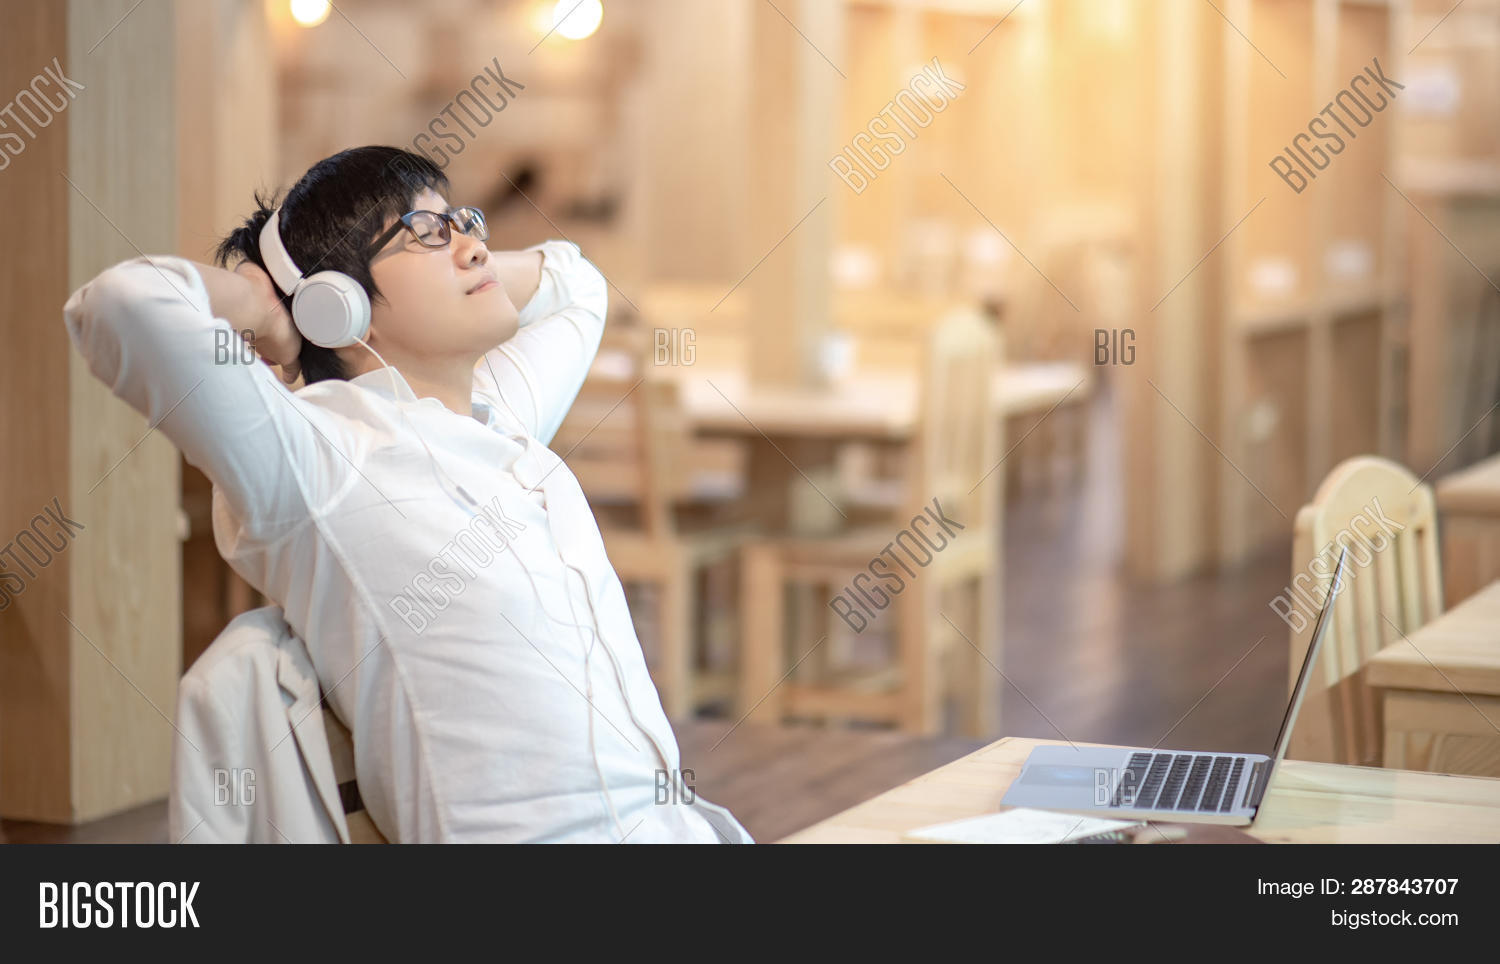 app,application,asian,beat,break,cafe,carefree,computer,dj,enjoy,entertainment,expressing,glasses,guy,happy,headphones,headset,hipster,internet,laptop,leisure,lifestyle,listening,male,man,media,mobile,mp3,multimedia,music,online,people,person,player,playing,portrait,radio,recreation,relaxation,relaxing,rest,smile,sound,streaming,table,technology,track,trendy,working